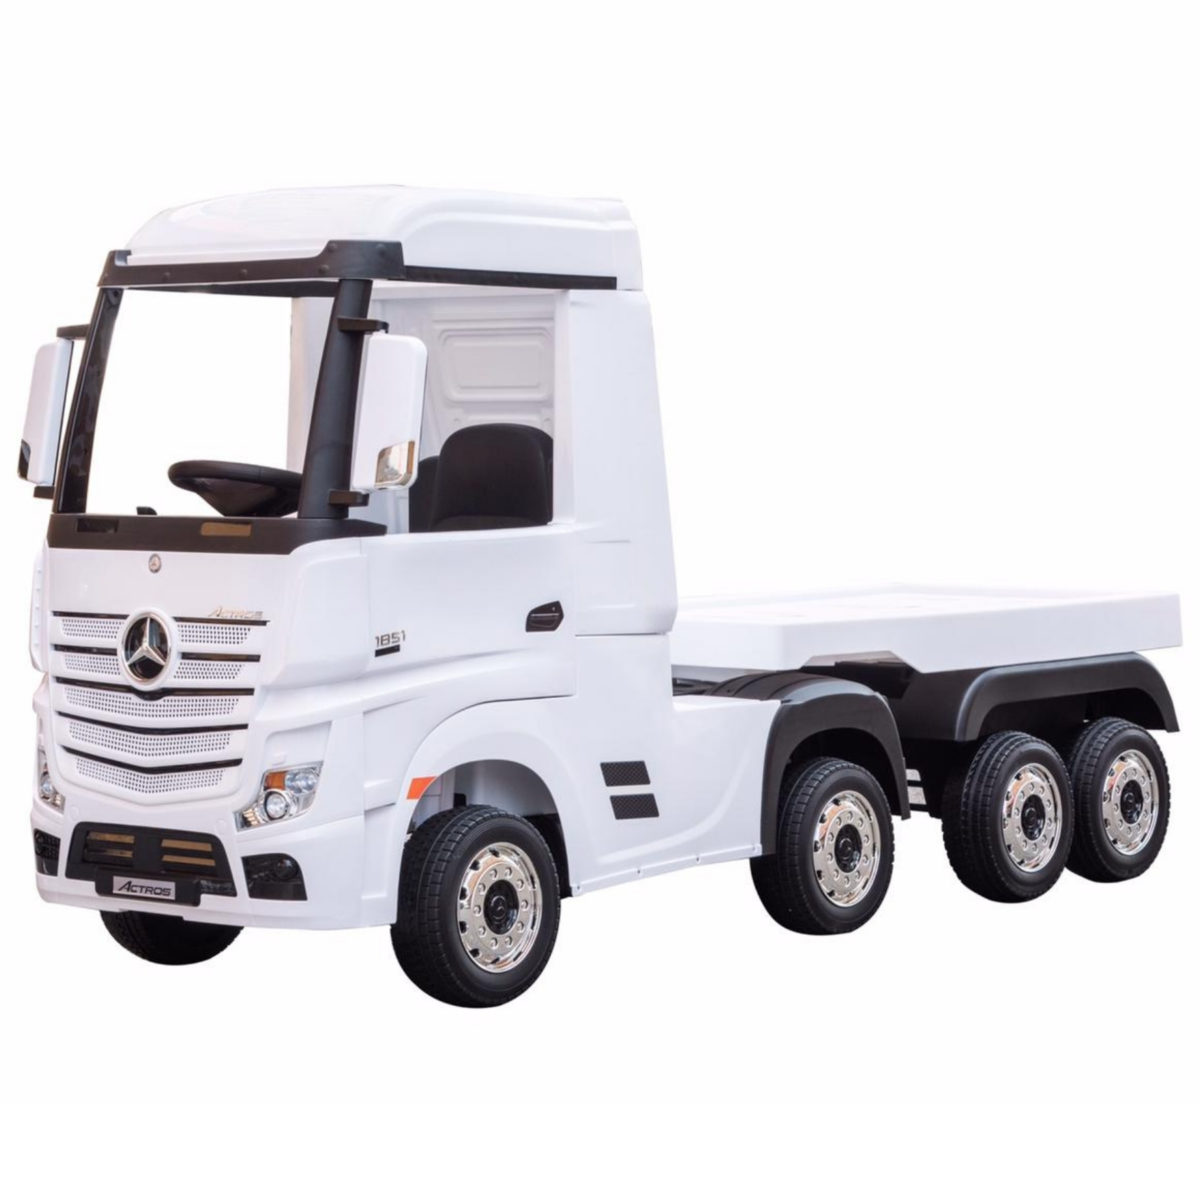 Mercedes Actros 24v* Electric Kids Truck With Trailer – White